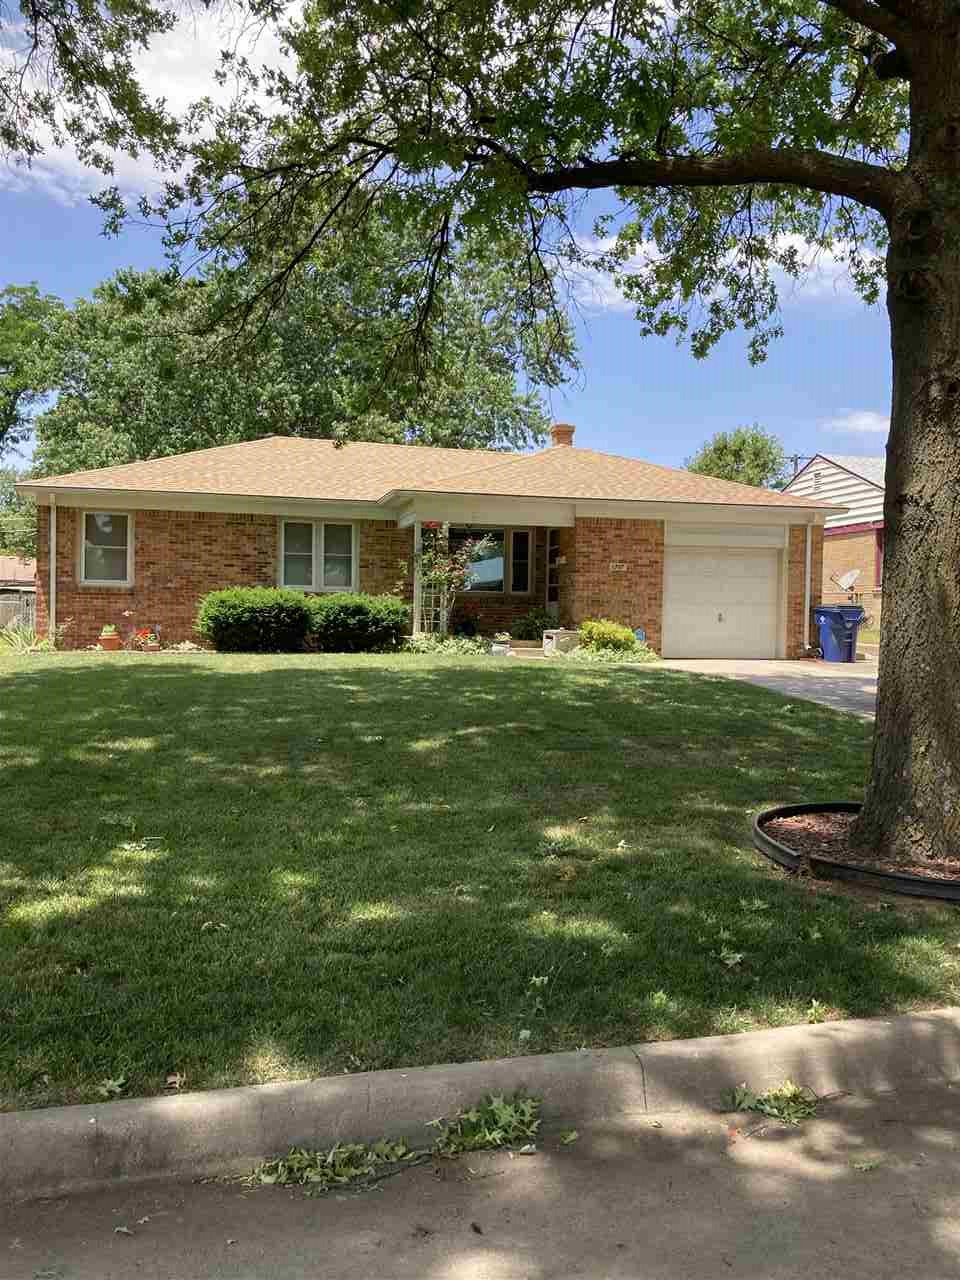 Very well maintained home on a quiet street! You will find plenty of space in this home with over 15